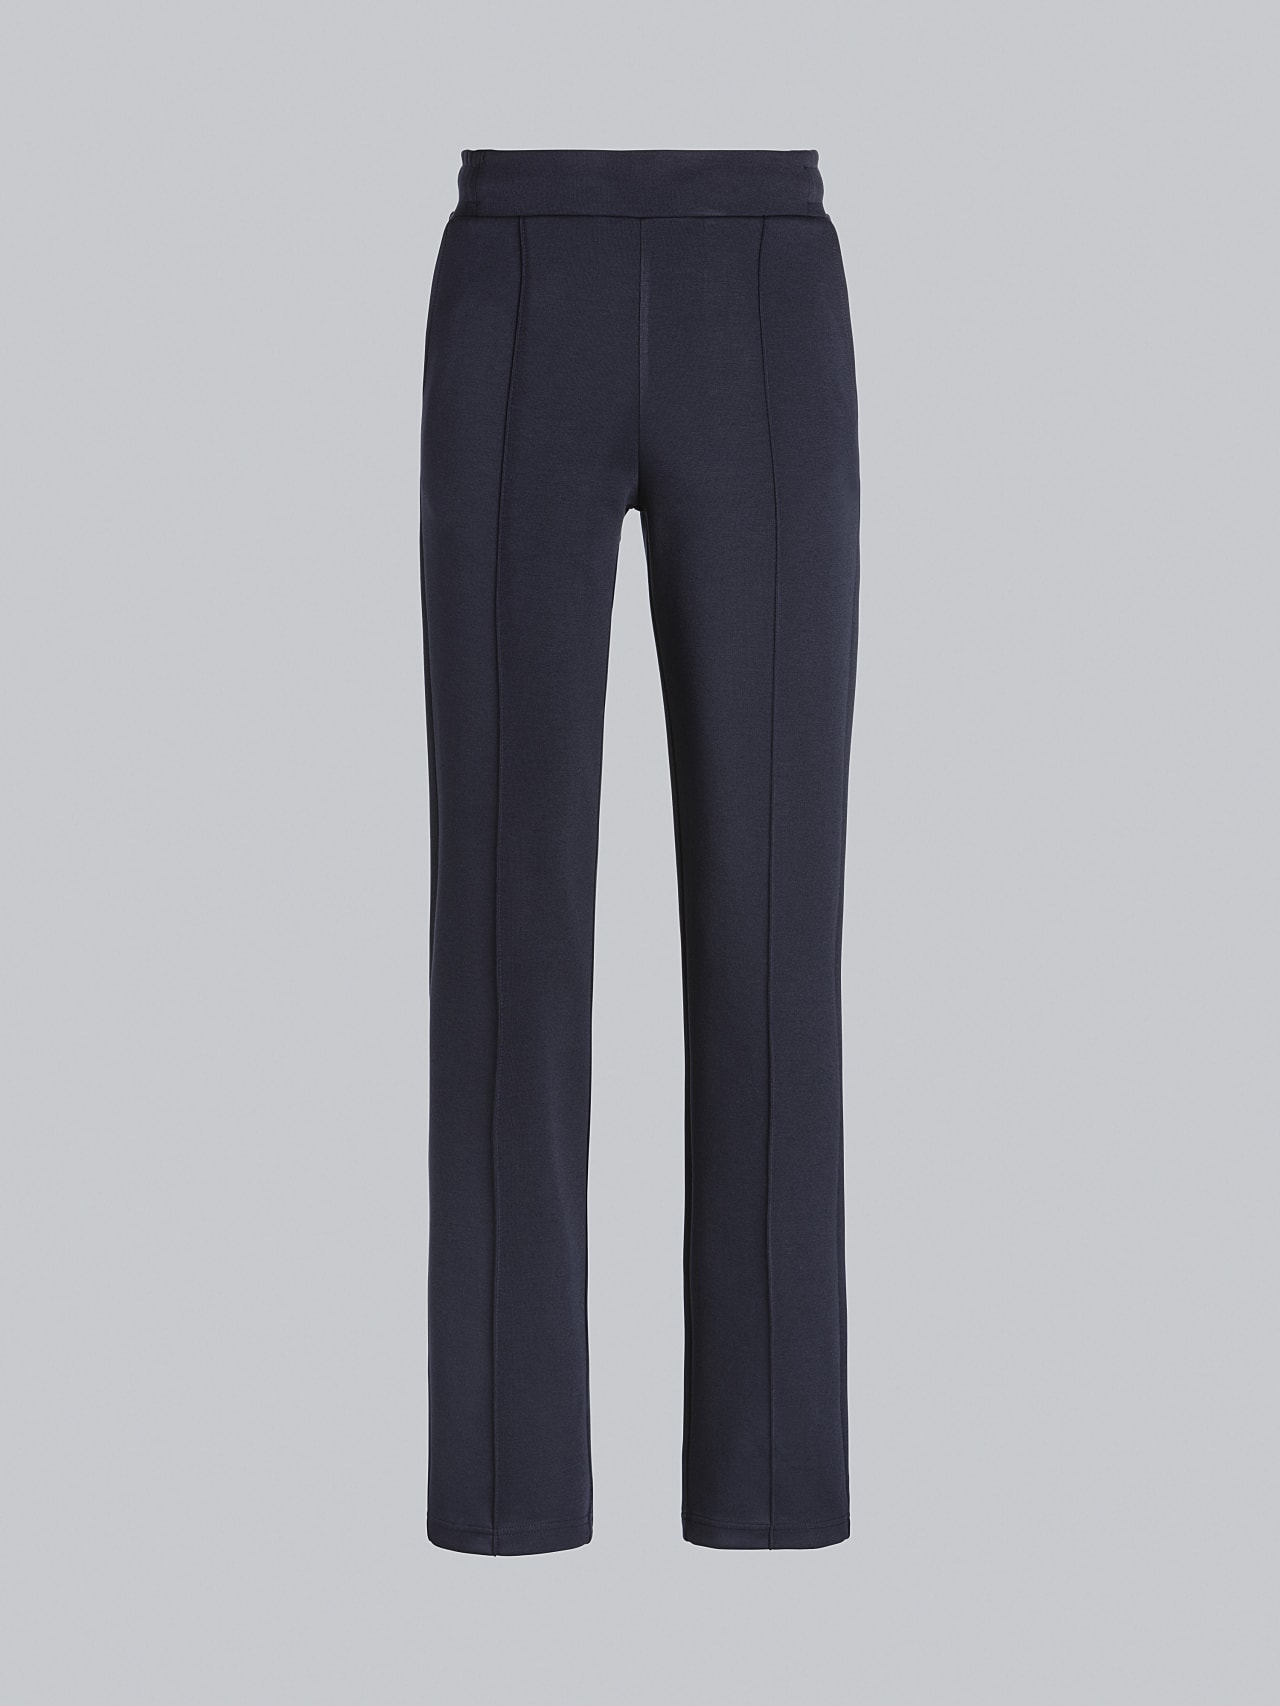 POVOA V1.Y5.02 Relaxed-Fit Premium Sweat Pants navy Back Alpha Tauri